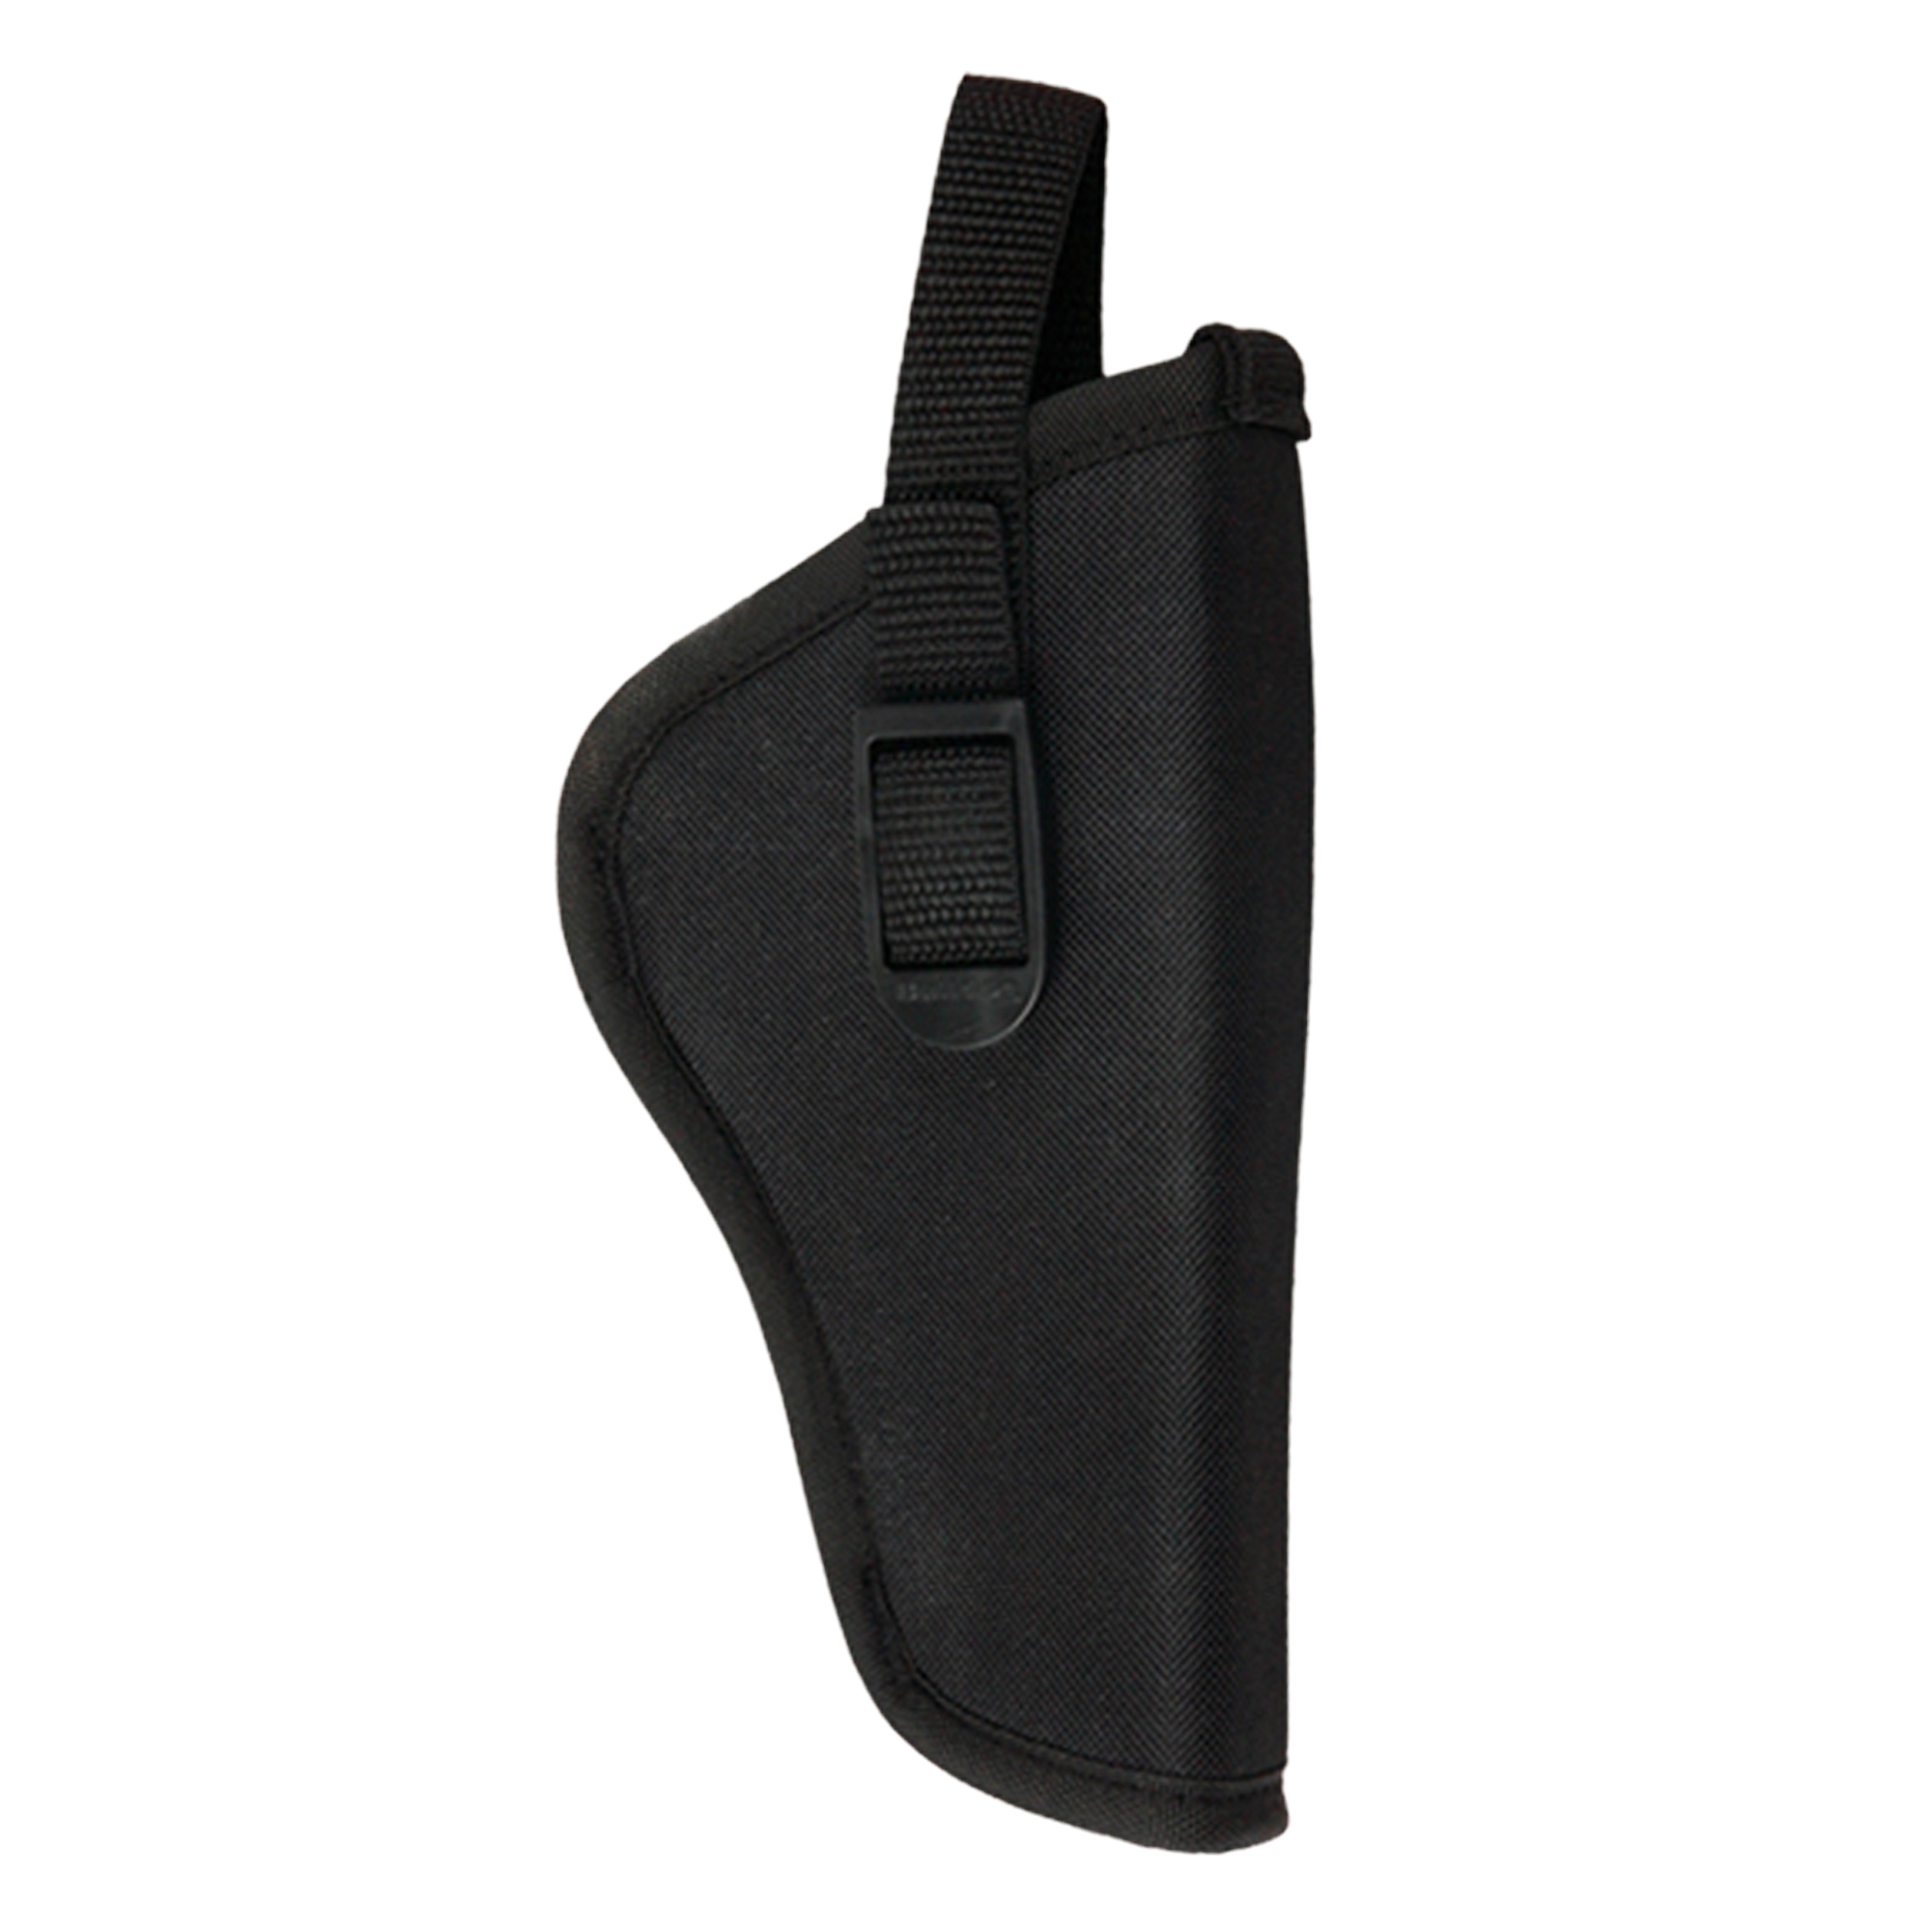 """The Pit Bull Hip Holster with its durable nylon water resistant outer shell and top grade padding provides the ultimate fit"""" comfort and protection for you and your pistol."""